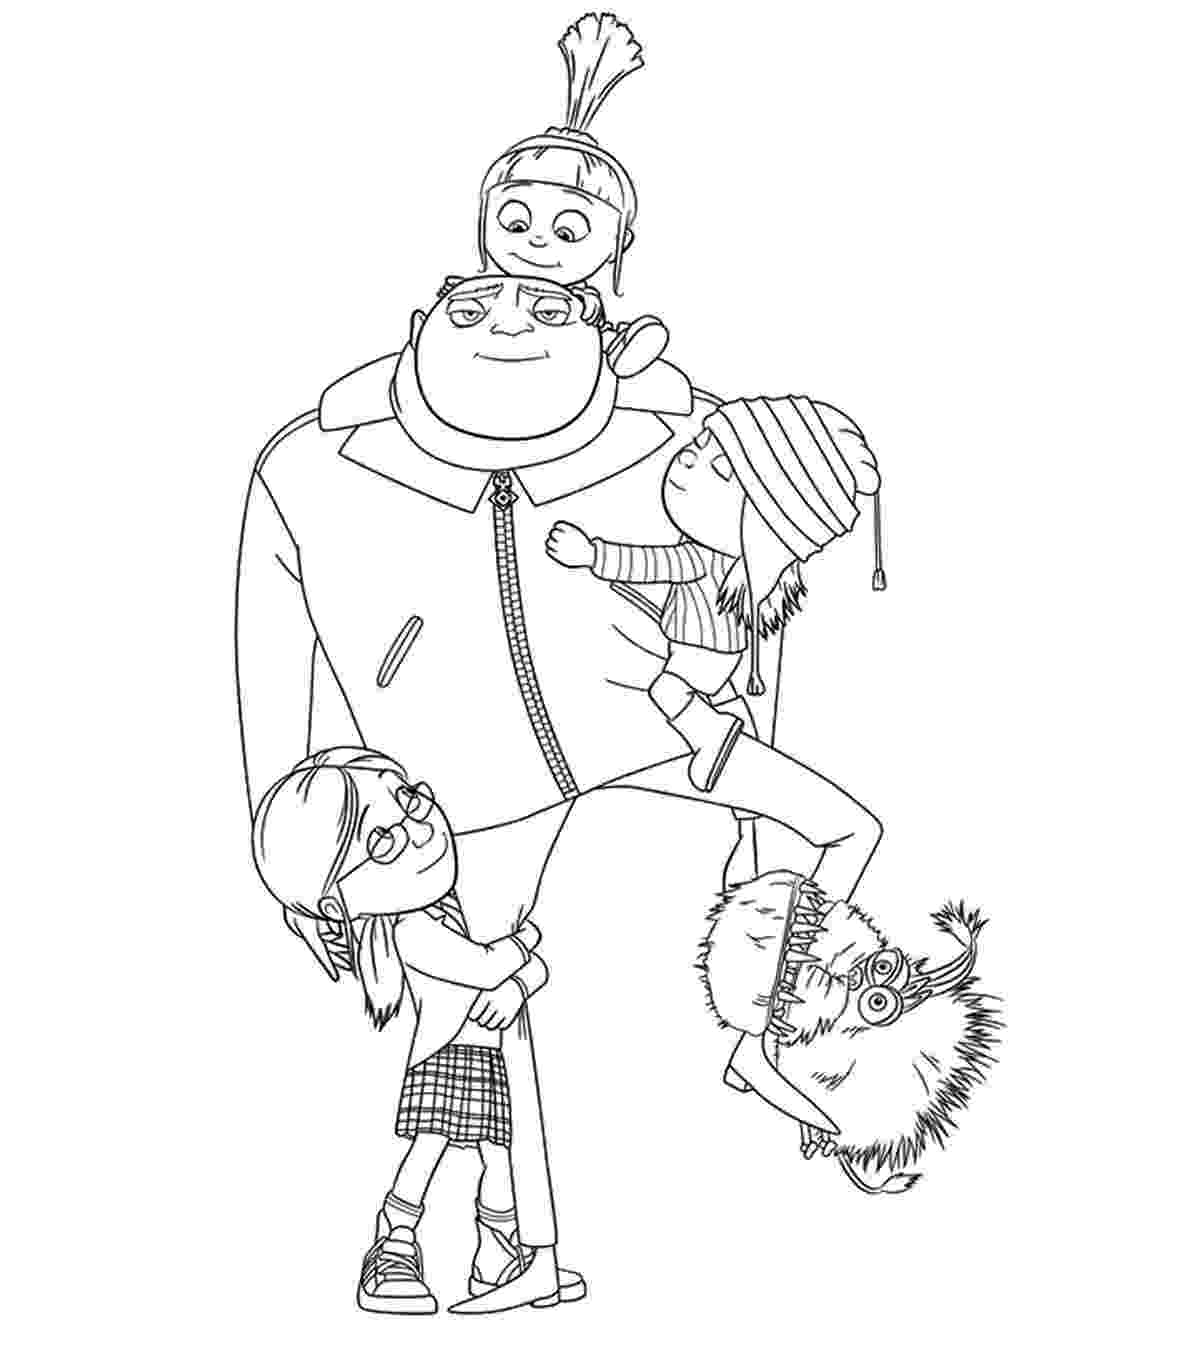 despicable me printables minion from despicable me 3 coloring page free printable despicable me printables